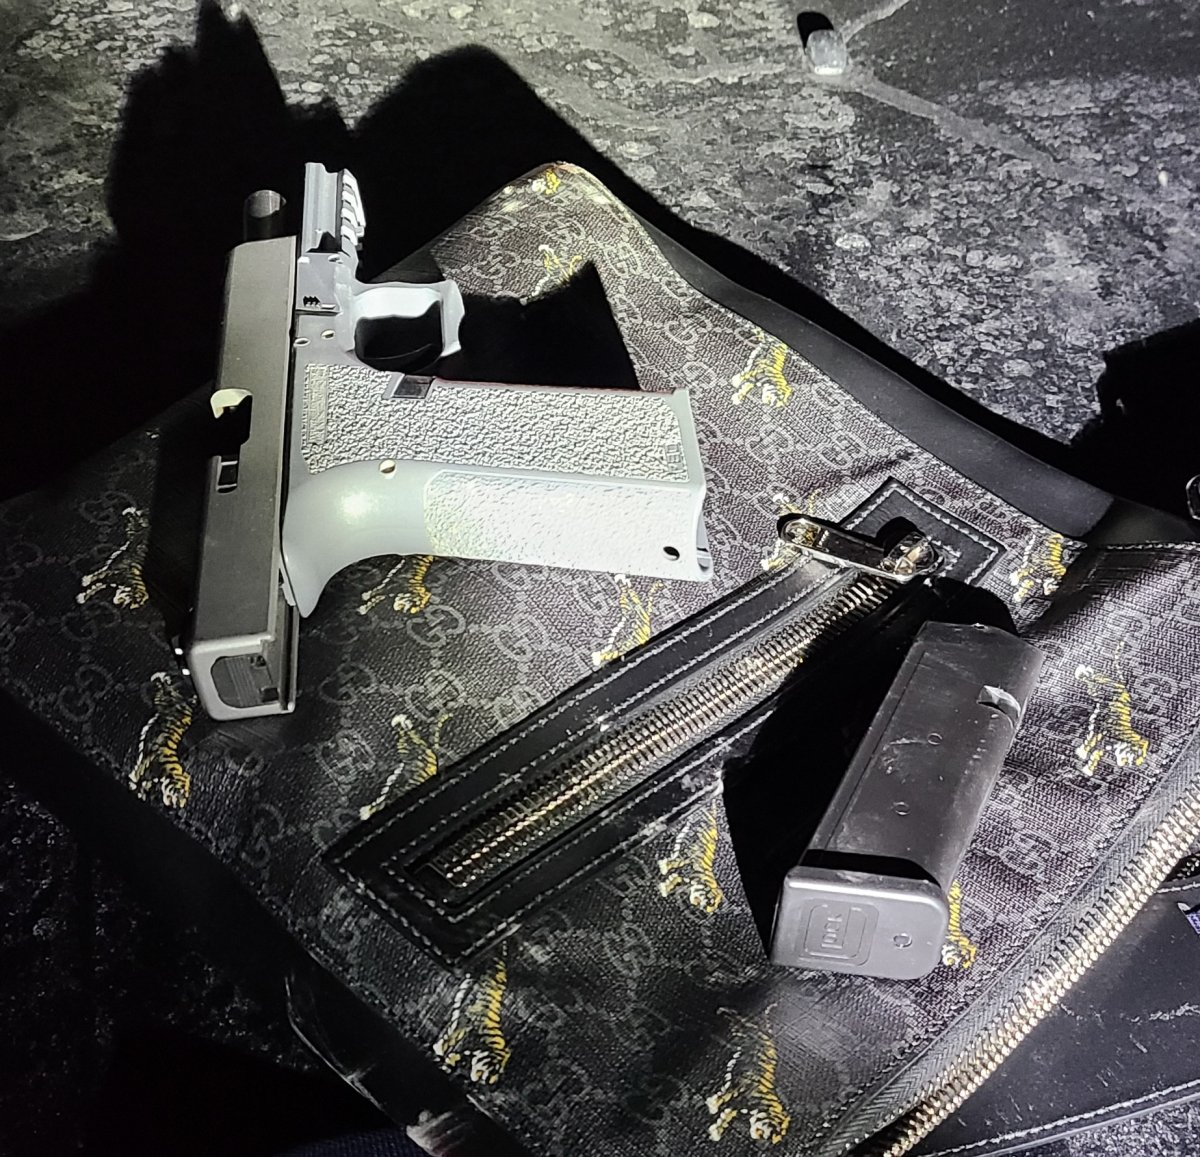 Northumberland OPP seized a firearm during a traffic stop on the weekend.